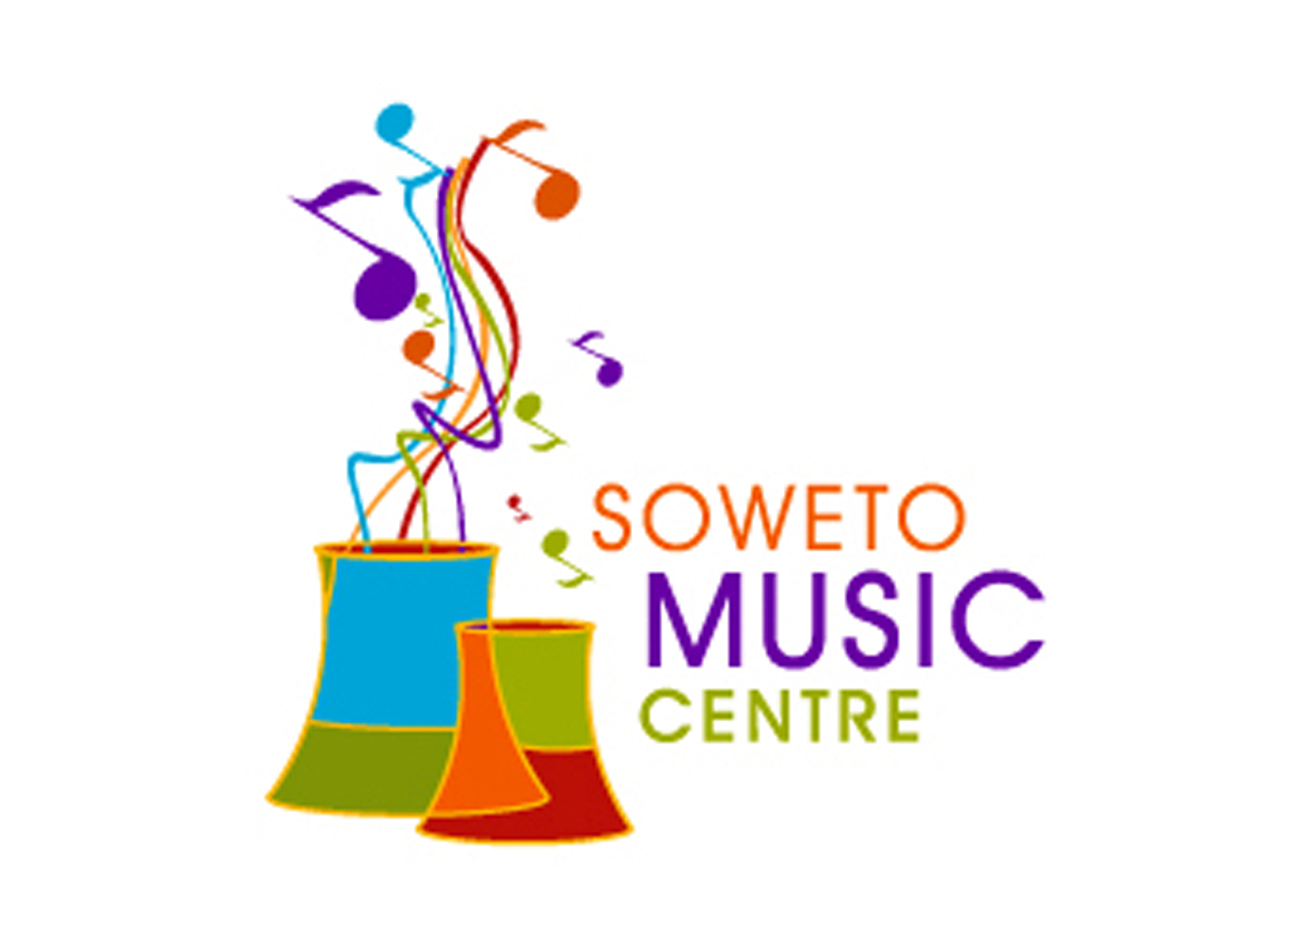 soweto-music-centre-logo-designers-agent-orange-branding-agency-south-african-company.jpg